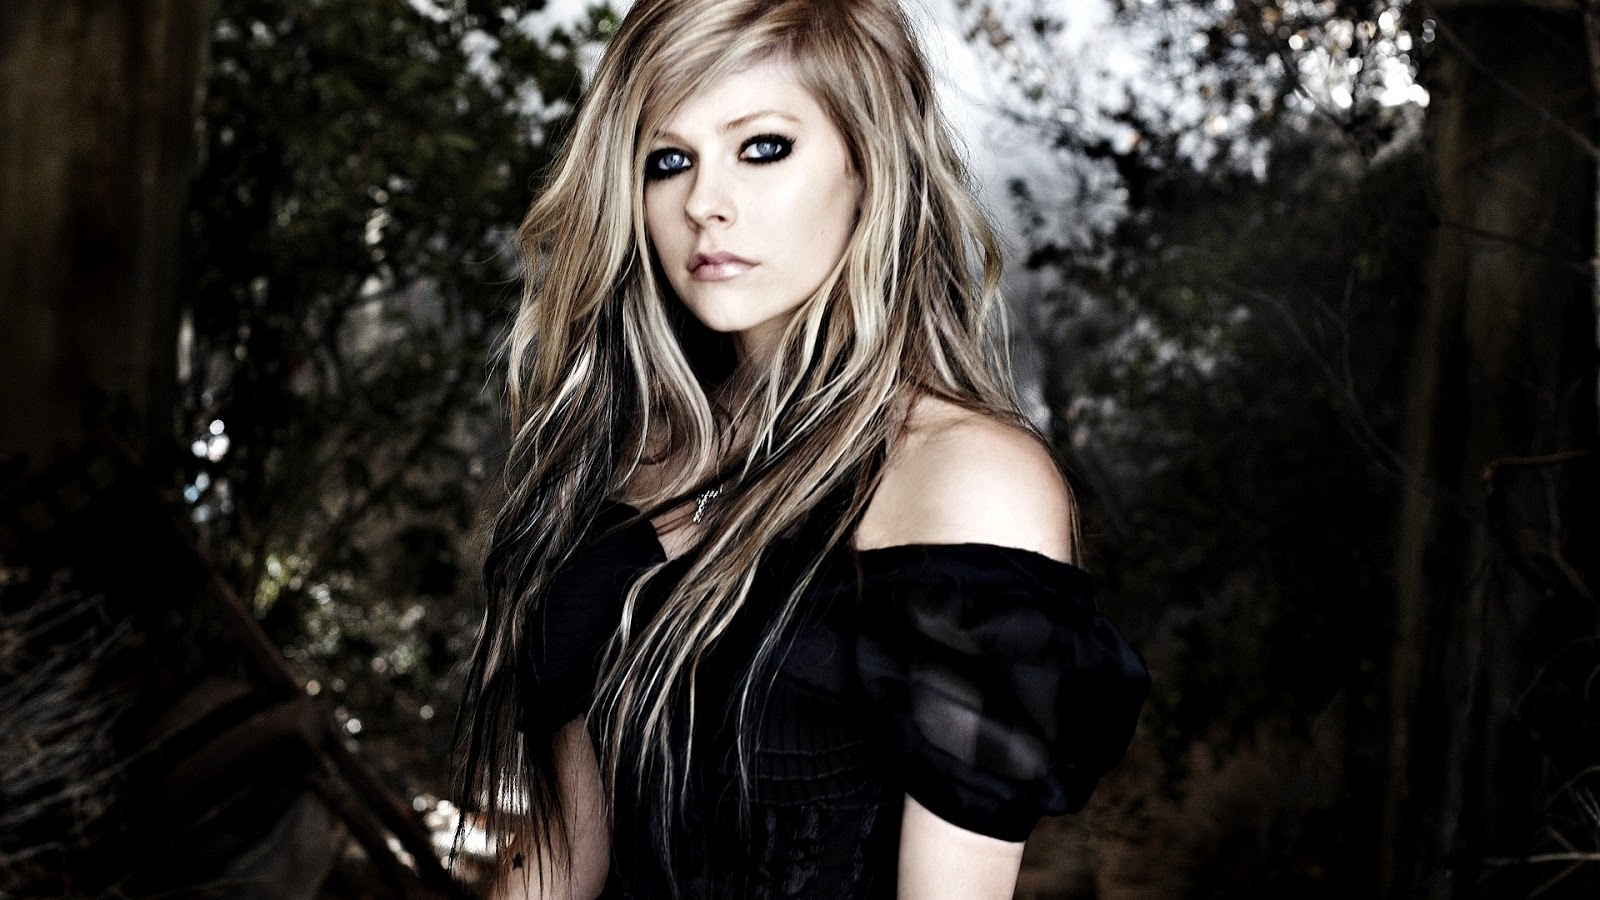 avril lavigne hot hd wallpaper wall pc